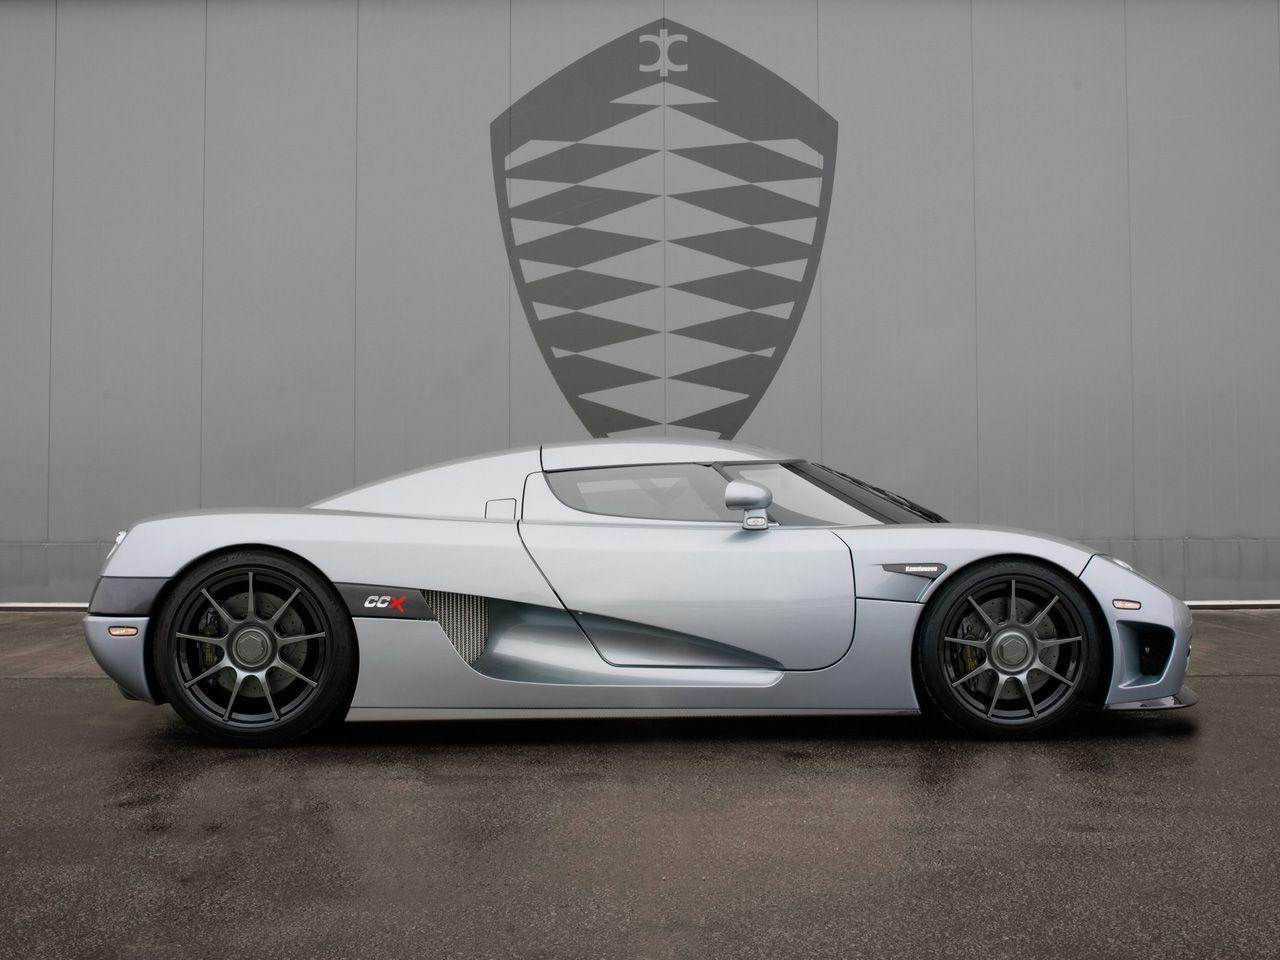 The Koenigsegg CCX:image for wallpaper and background